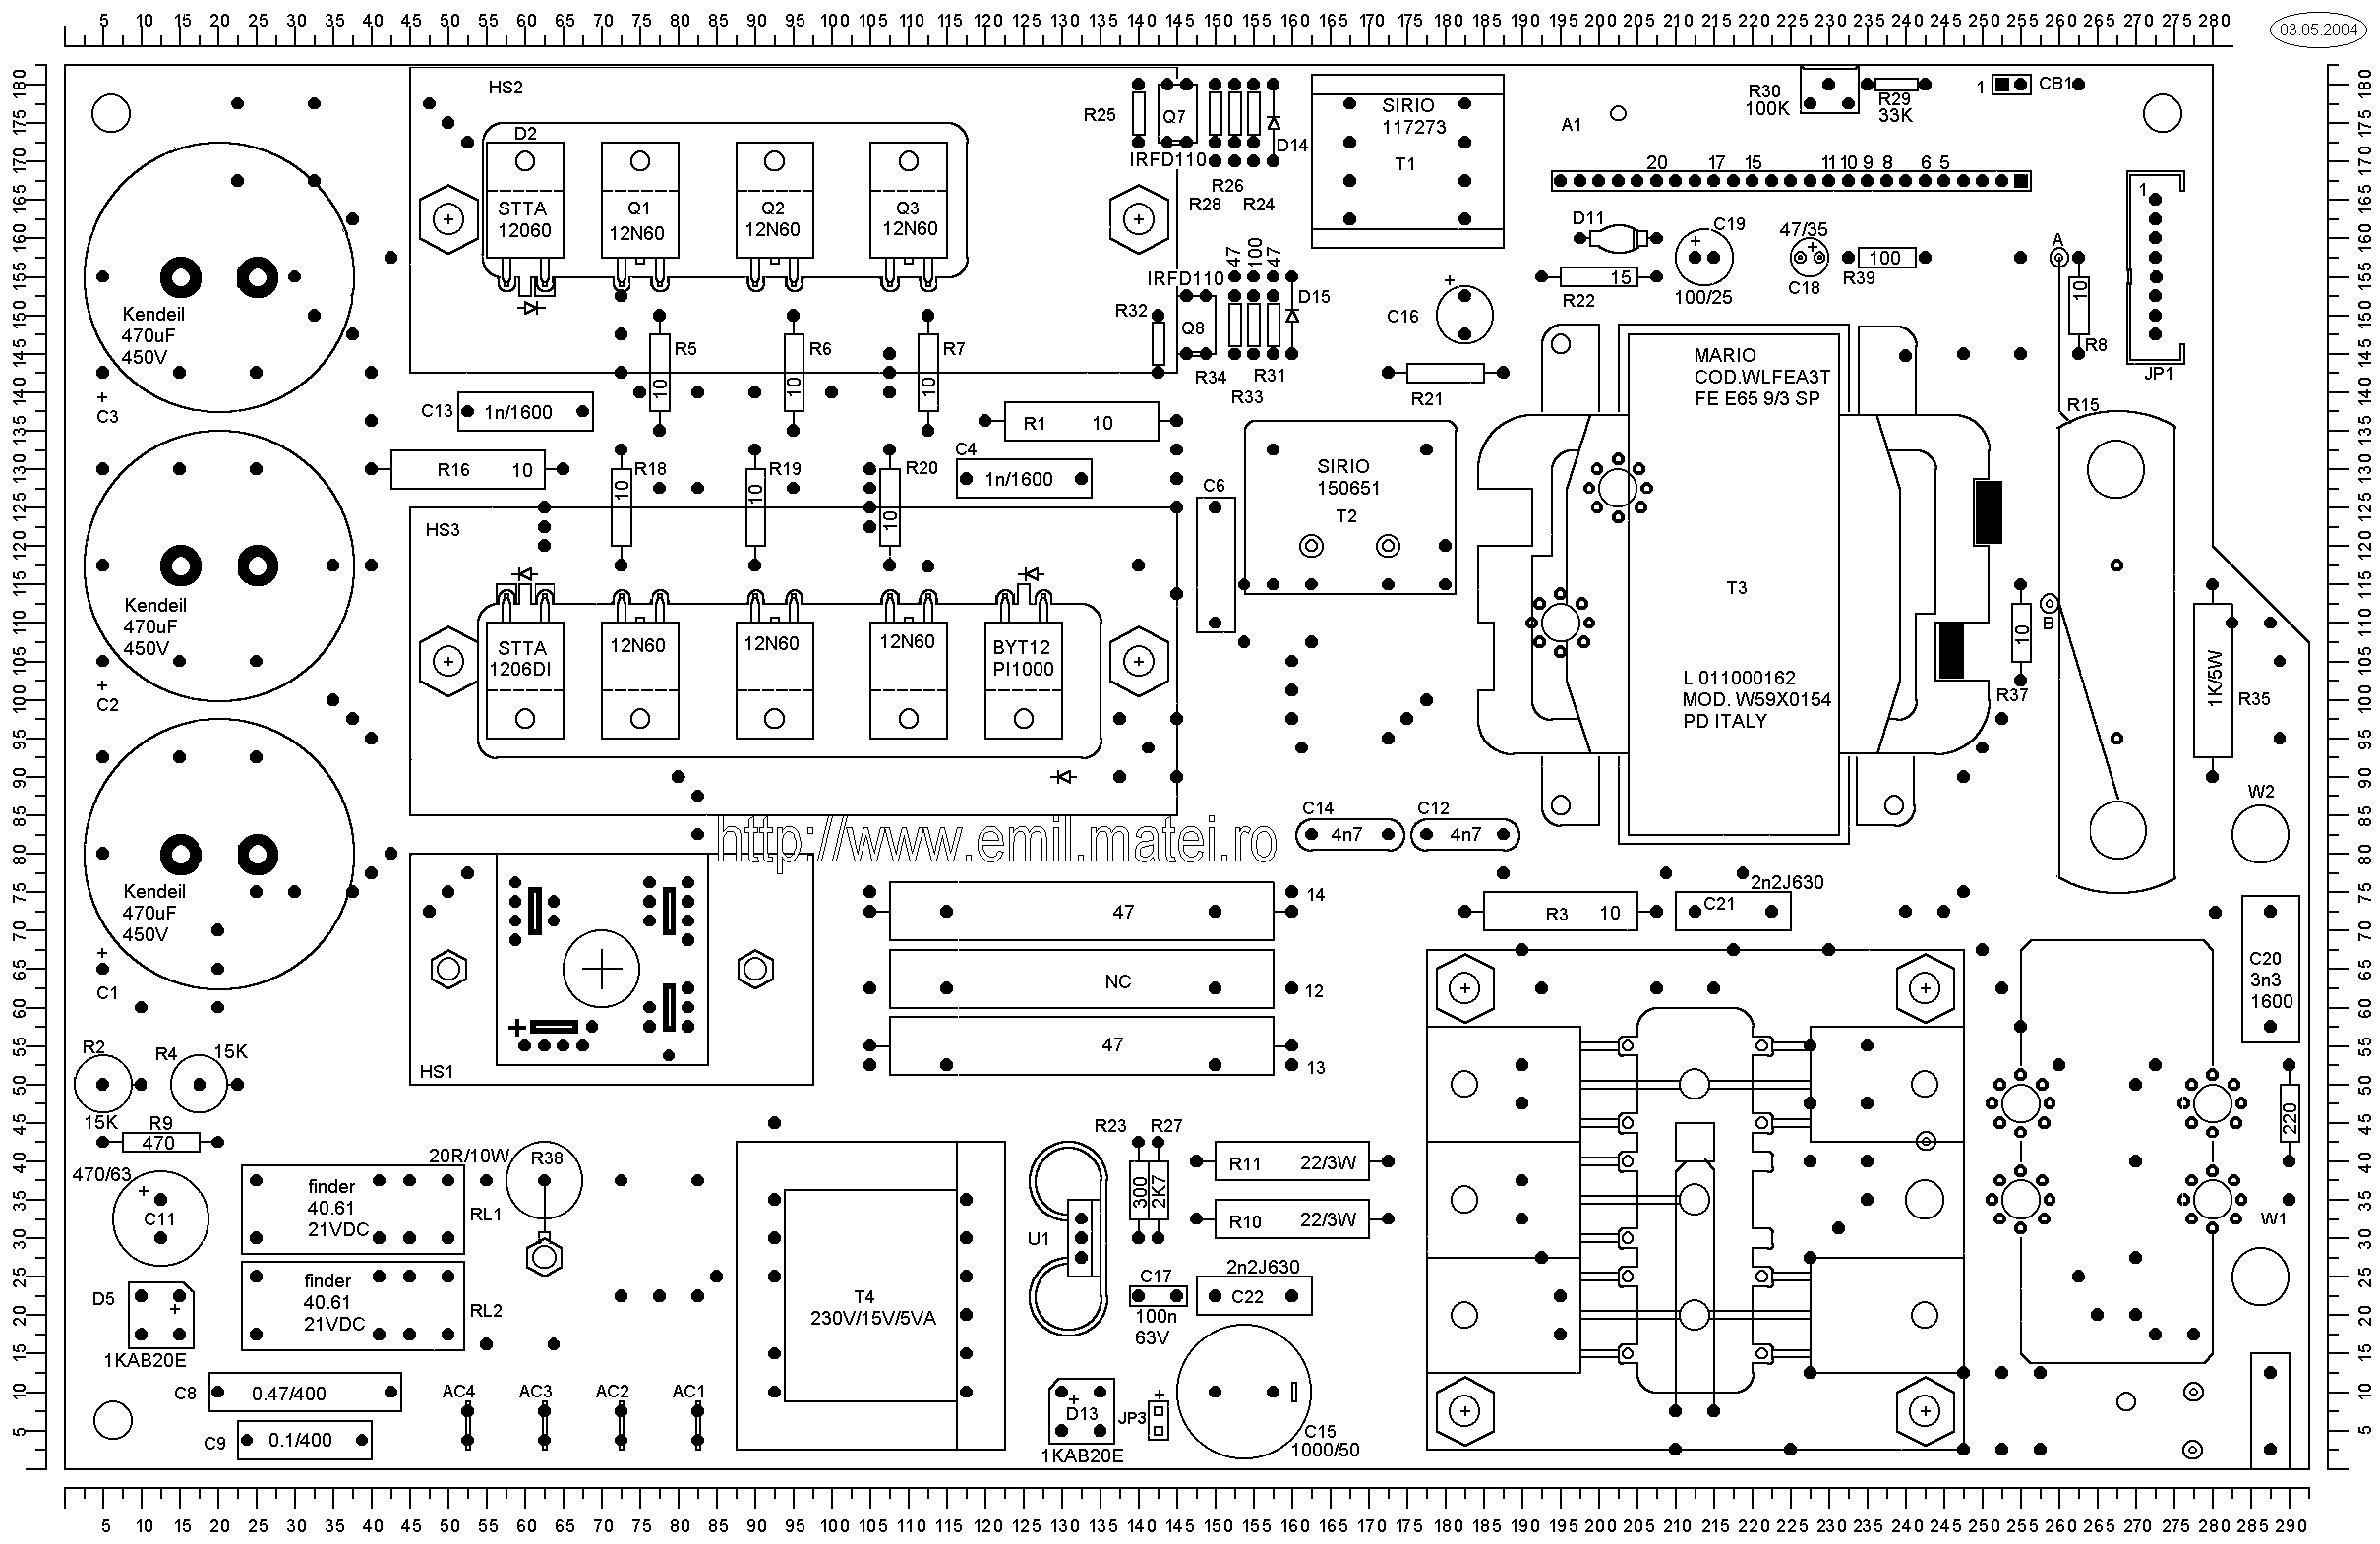 LINCOLN INVERTEC V140-S - PCB Layout